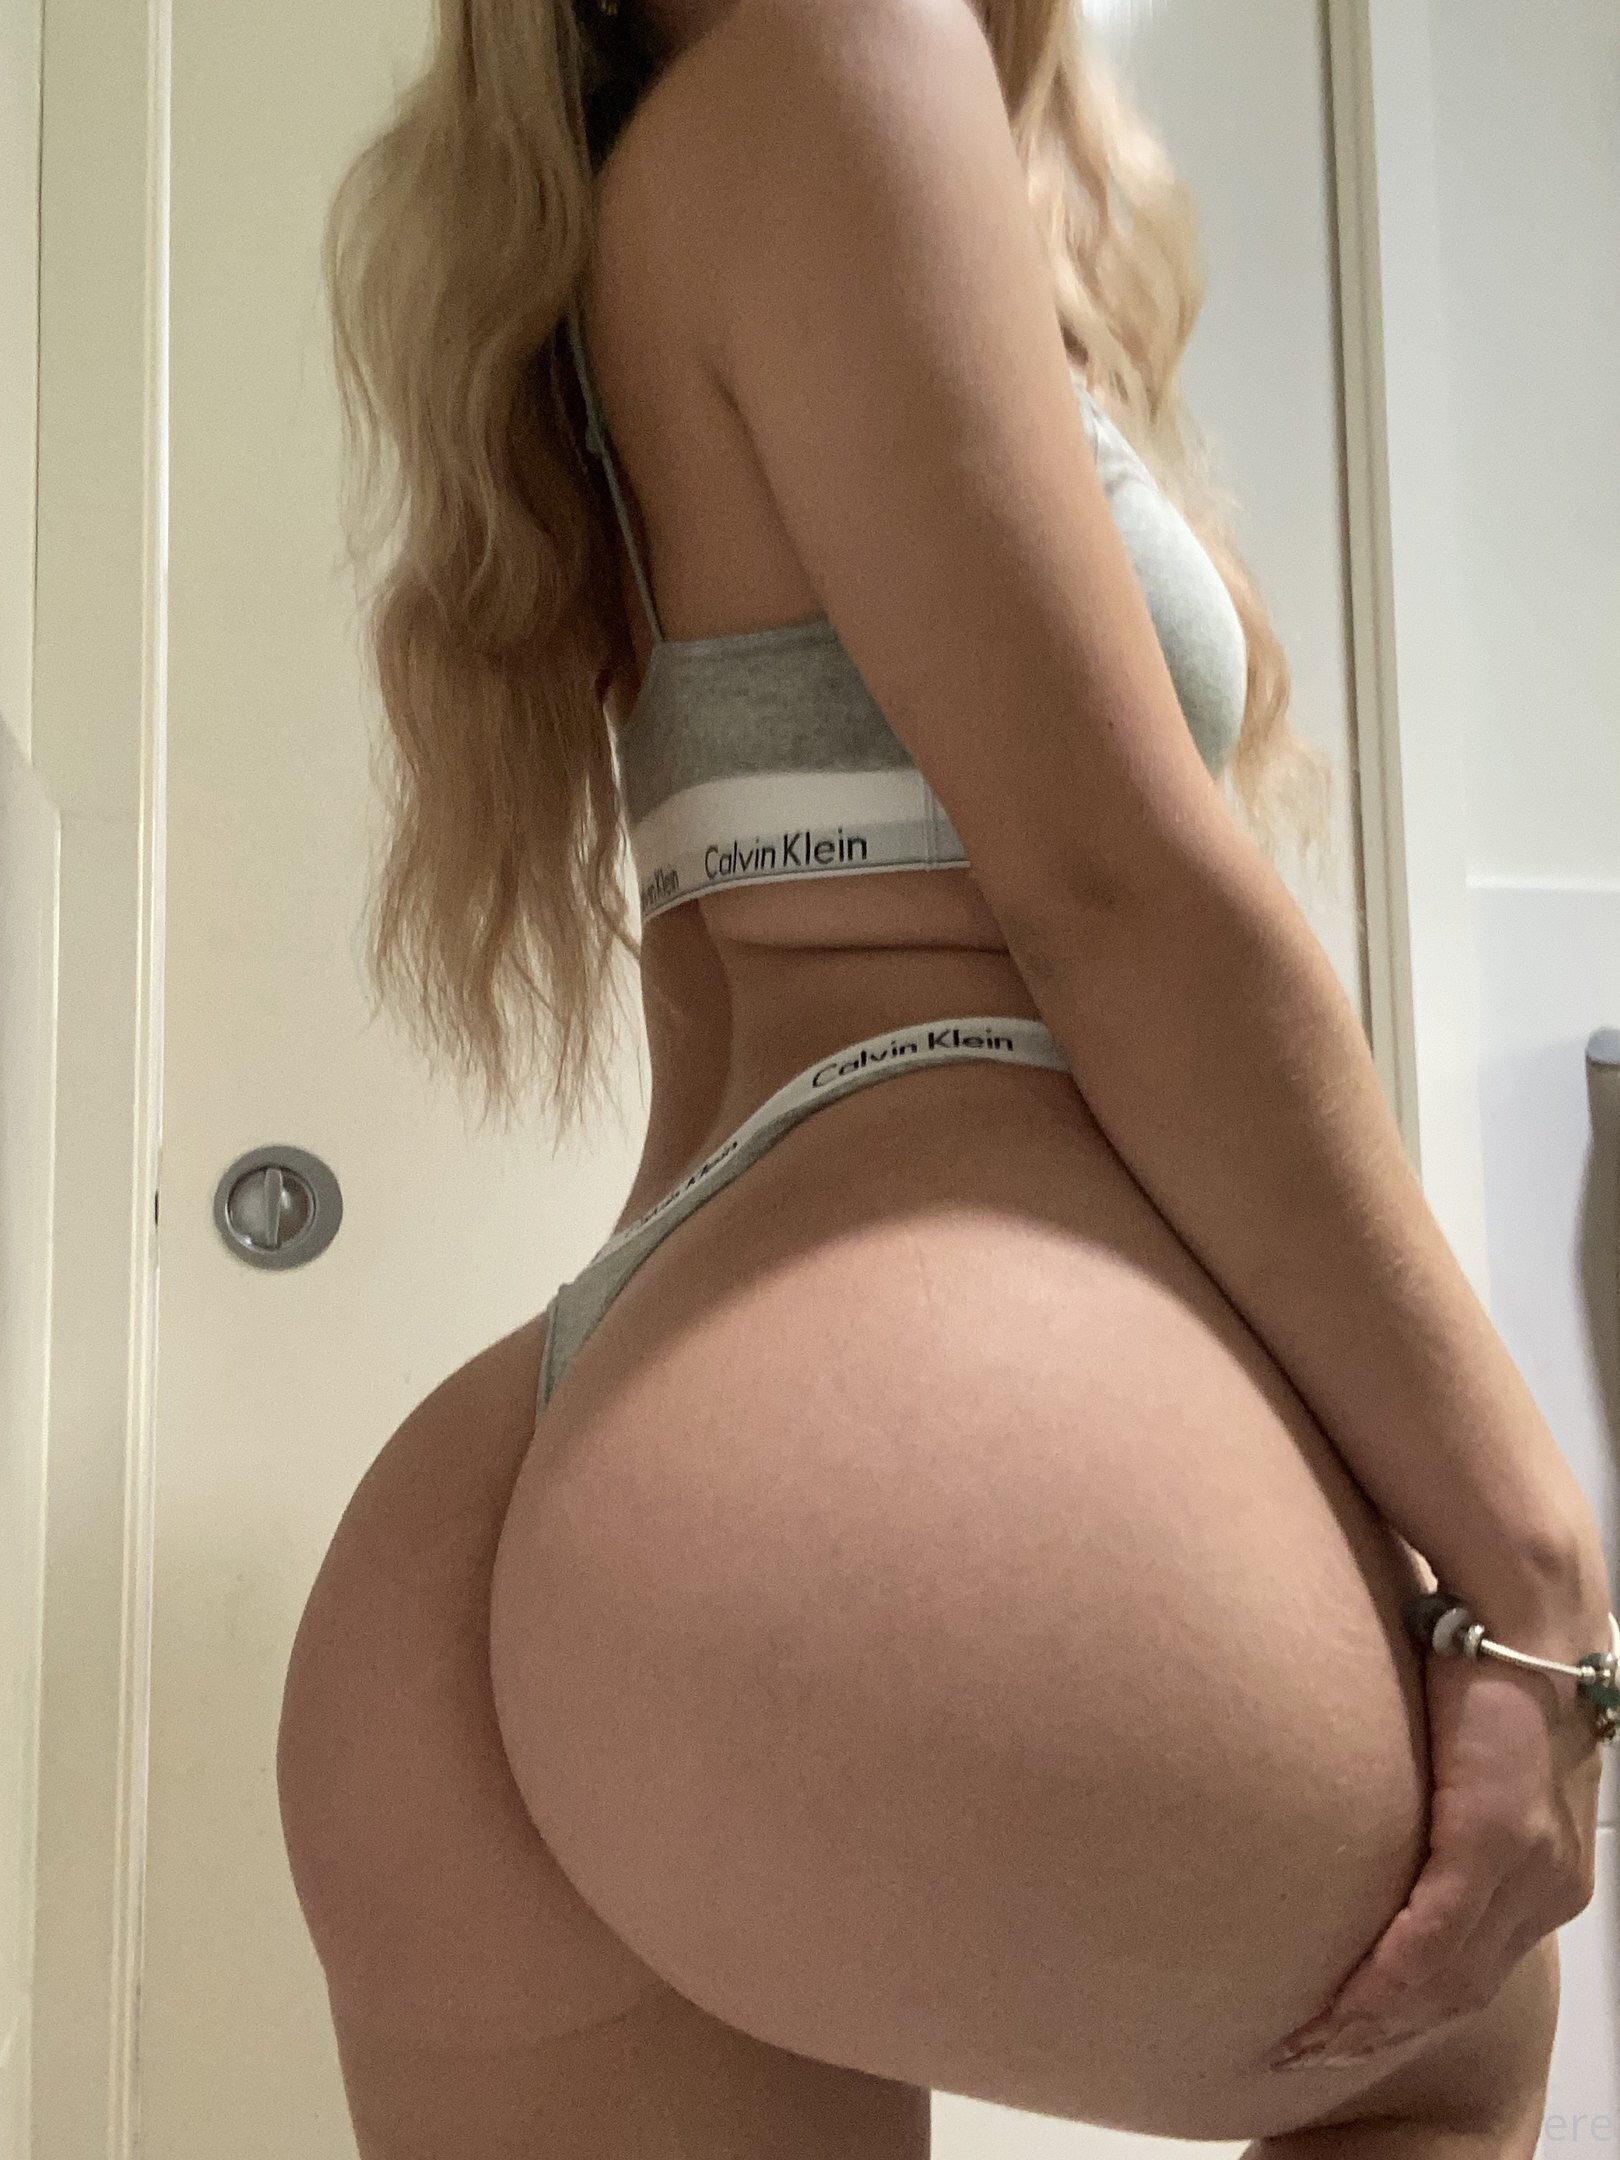 Lilith Cavaliere, Lilithcavalierex, Onlyfans 0002